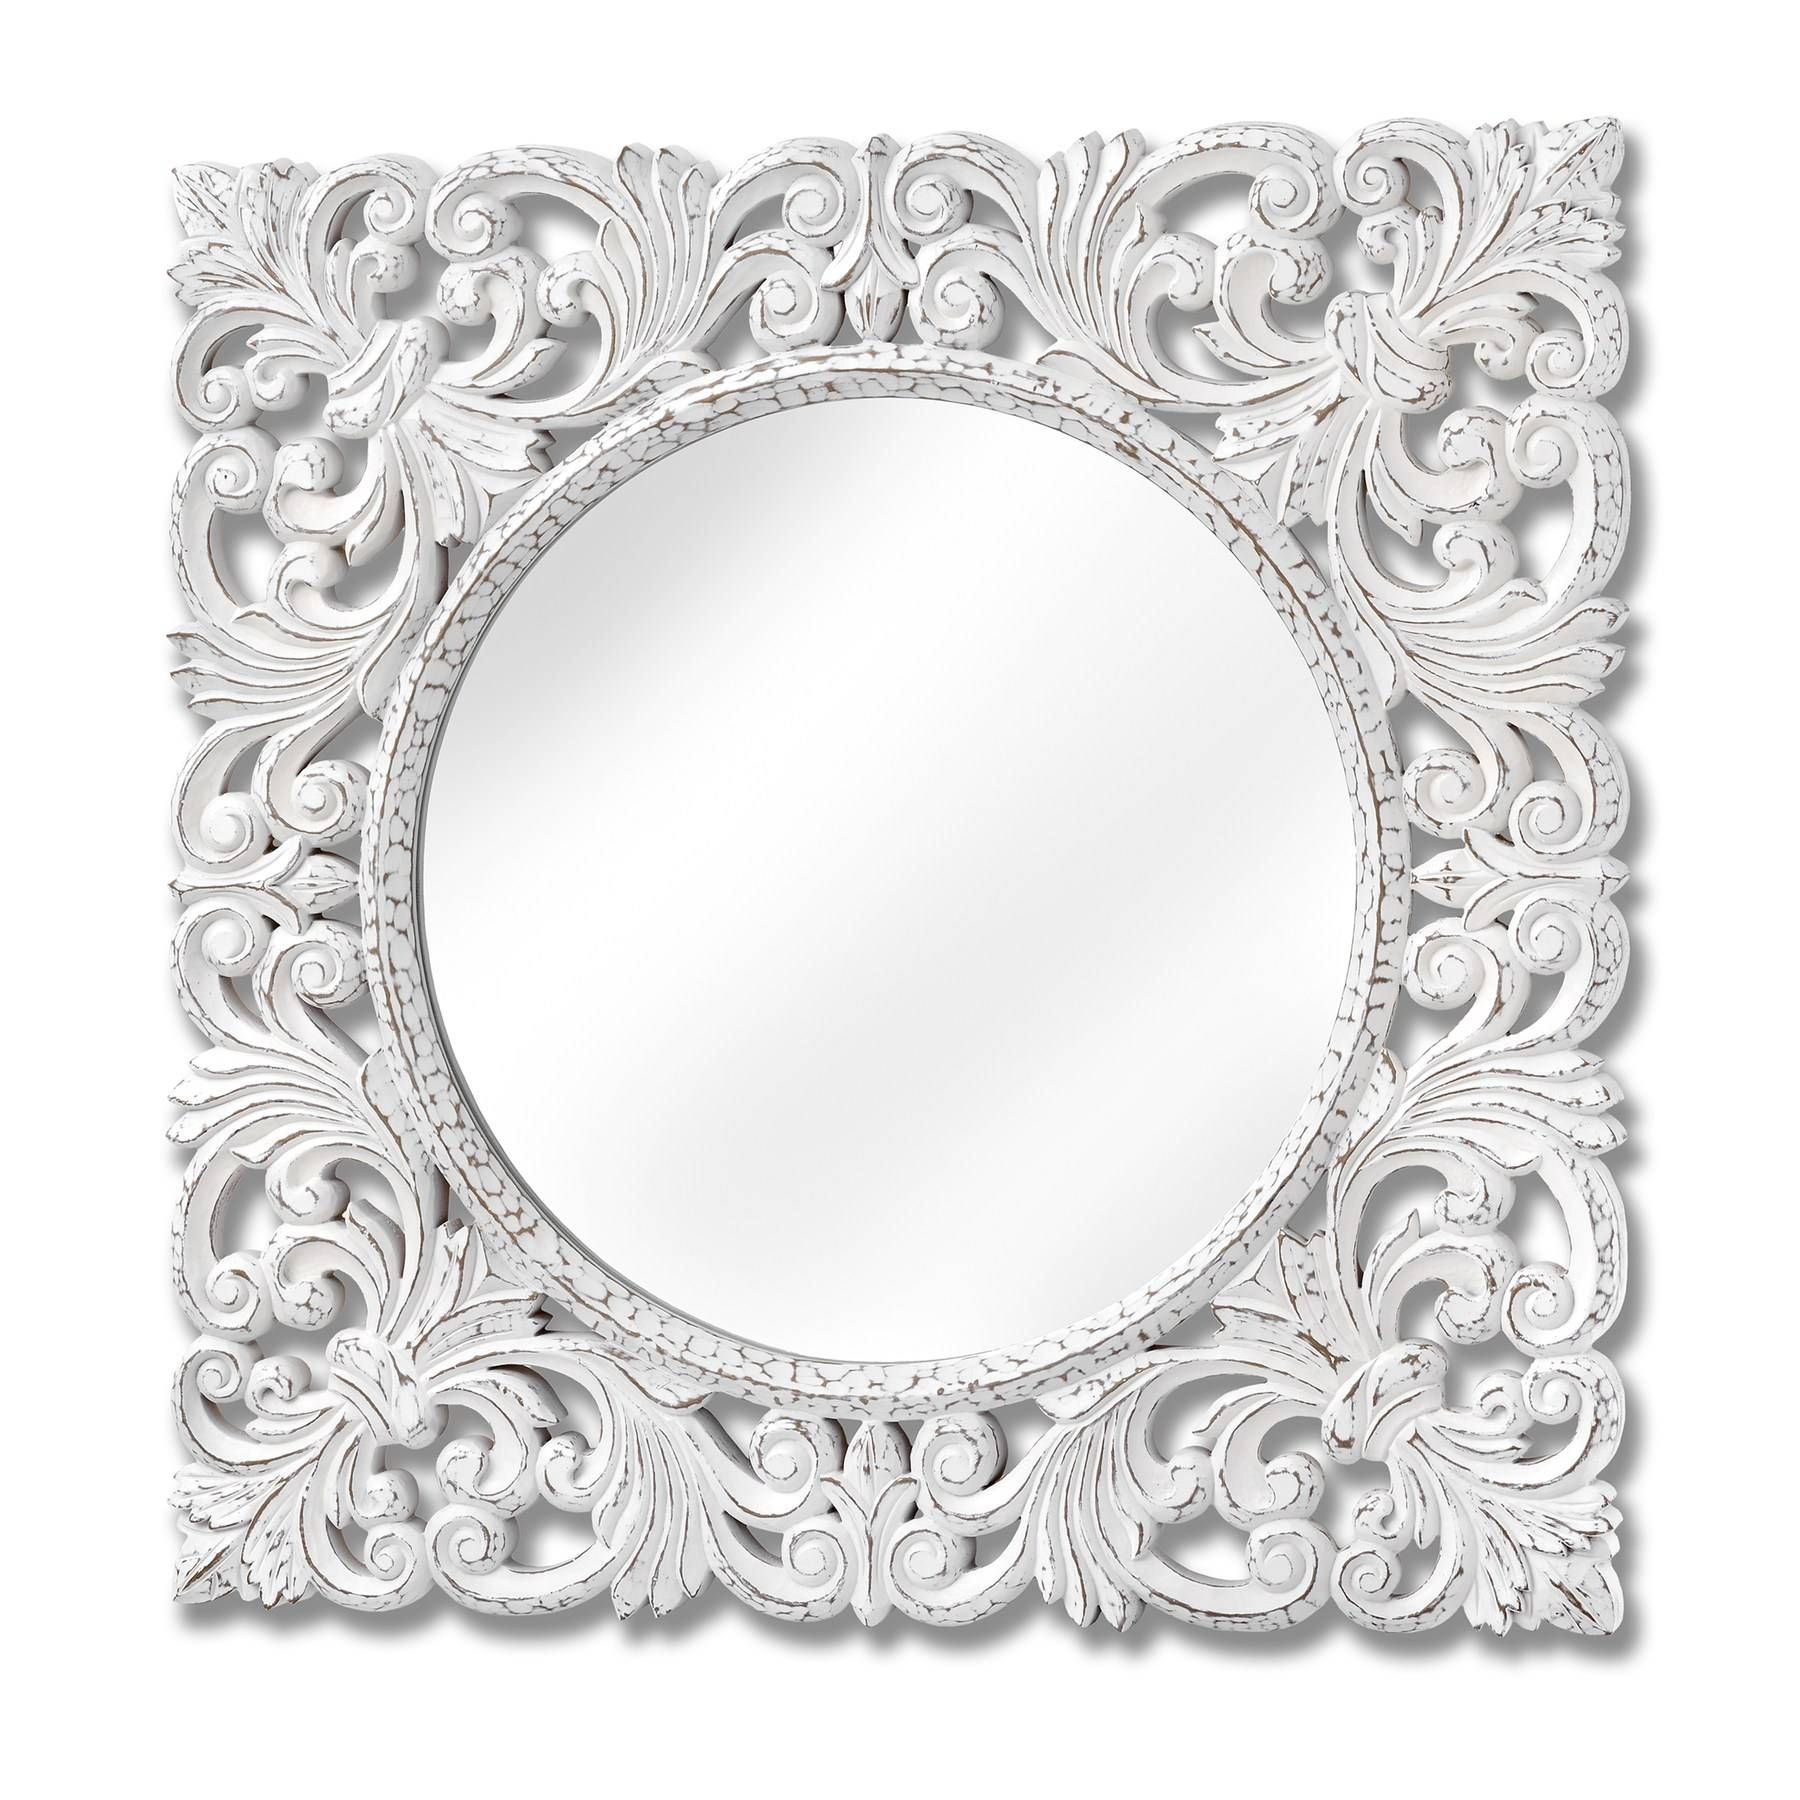 Wall Mirrors - Melody Maison® (Page 2) with Baroque Wall Mirrors (Image 15 of 15)